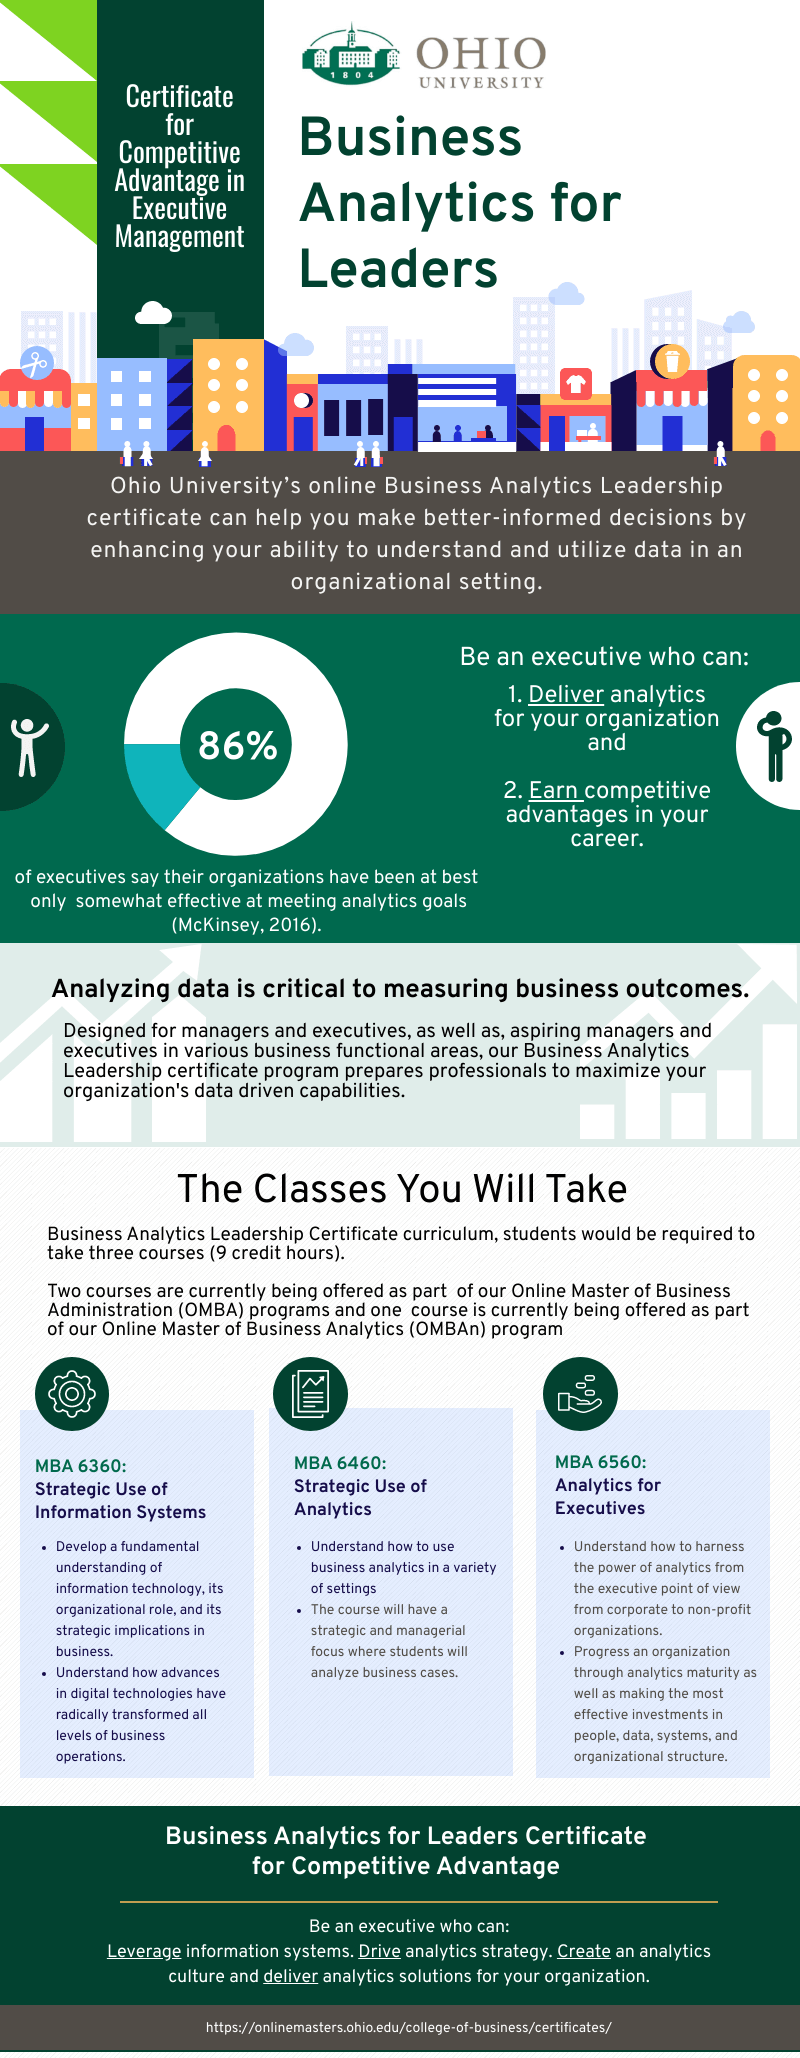 Graduate certificate dedicated to leaders who want business analytics